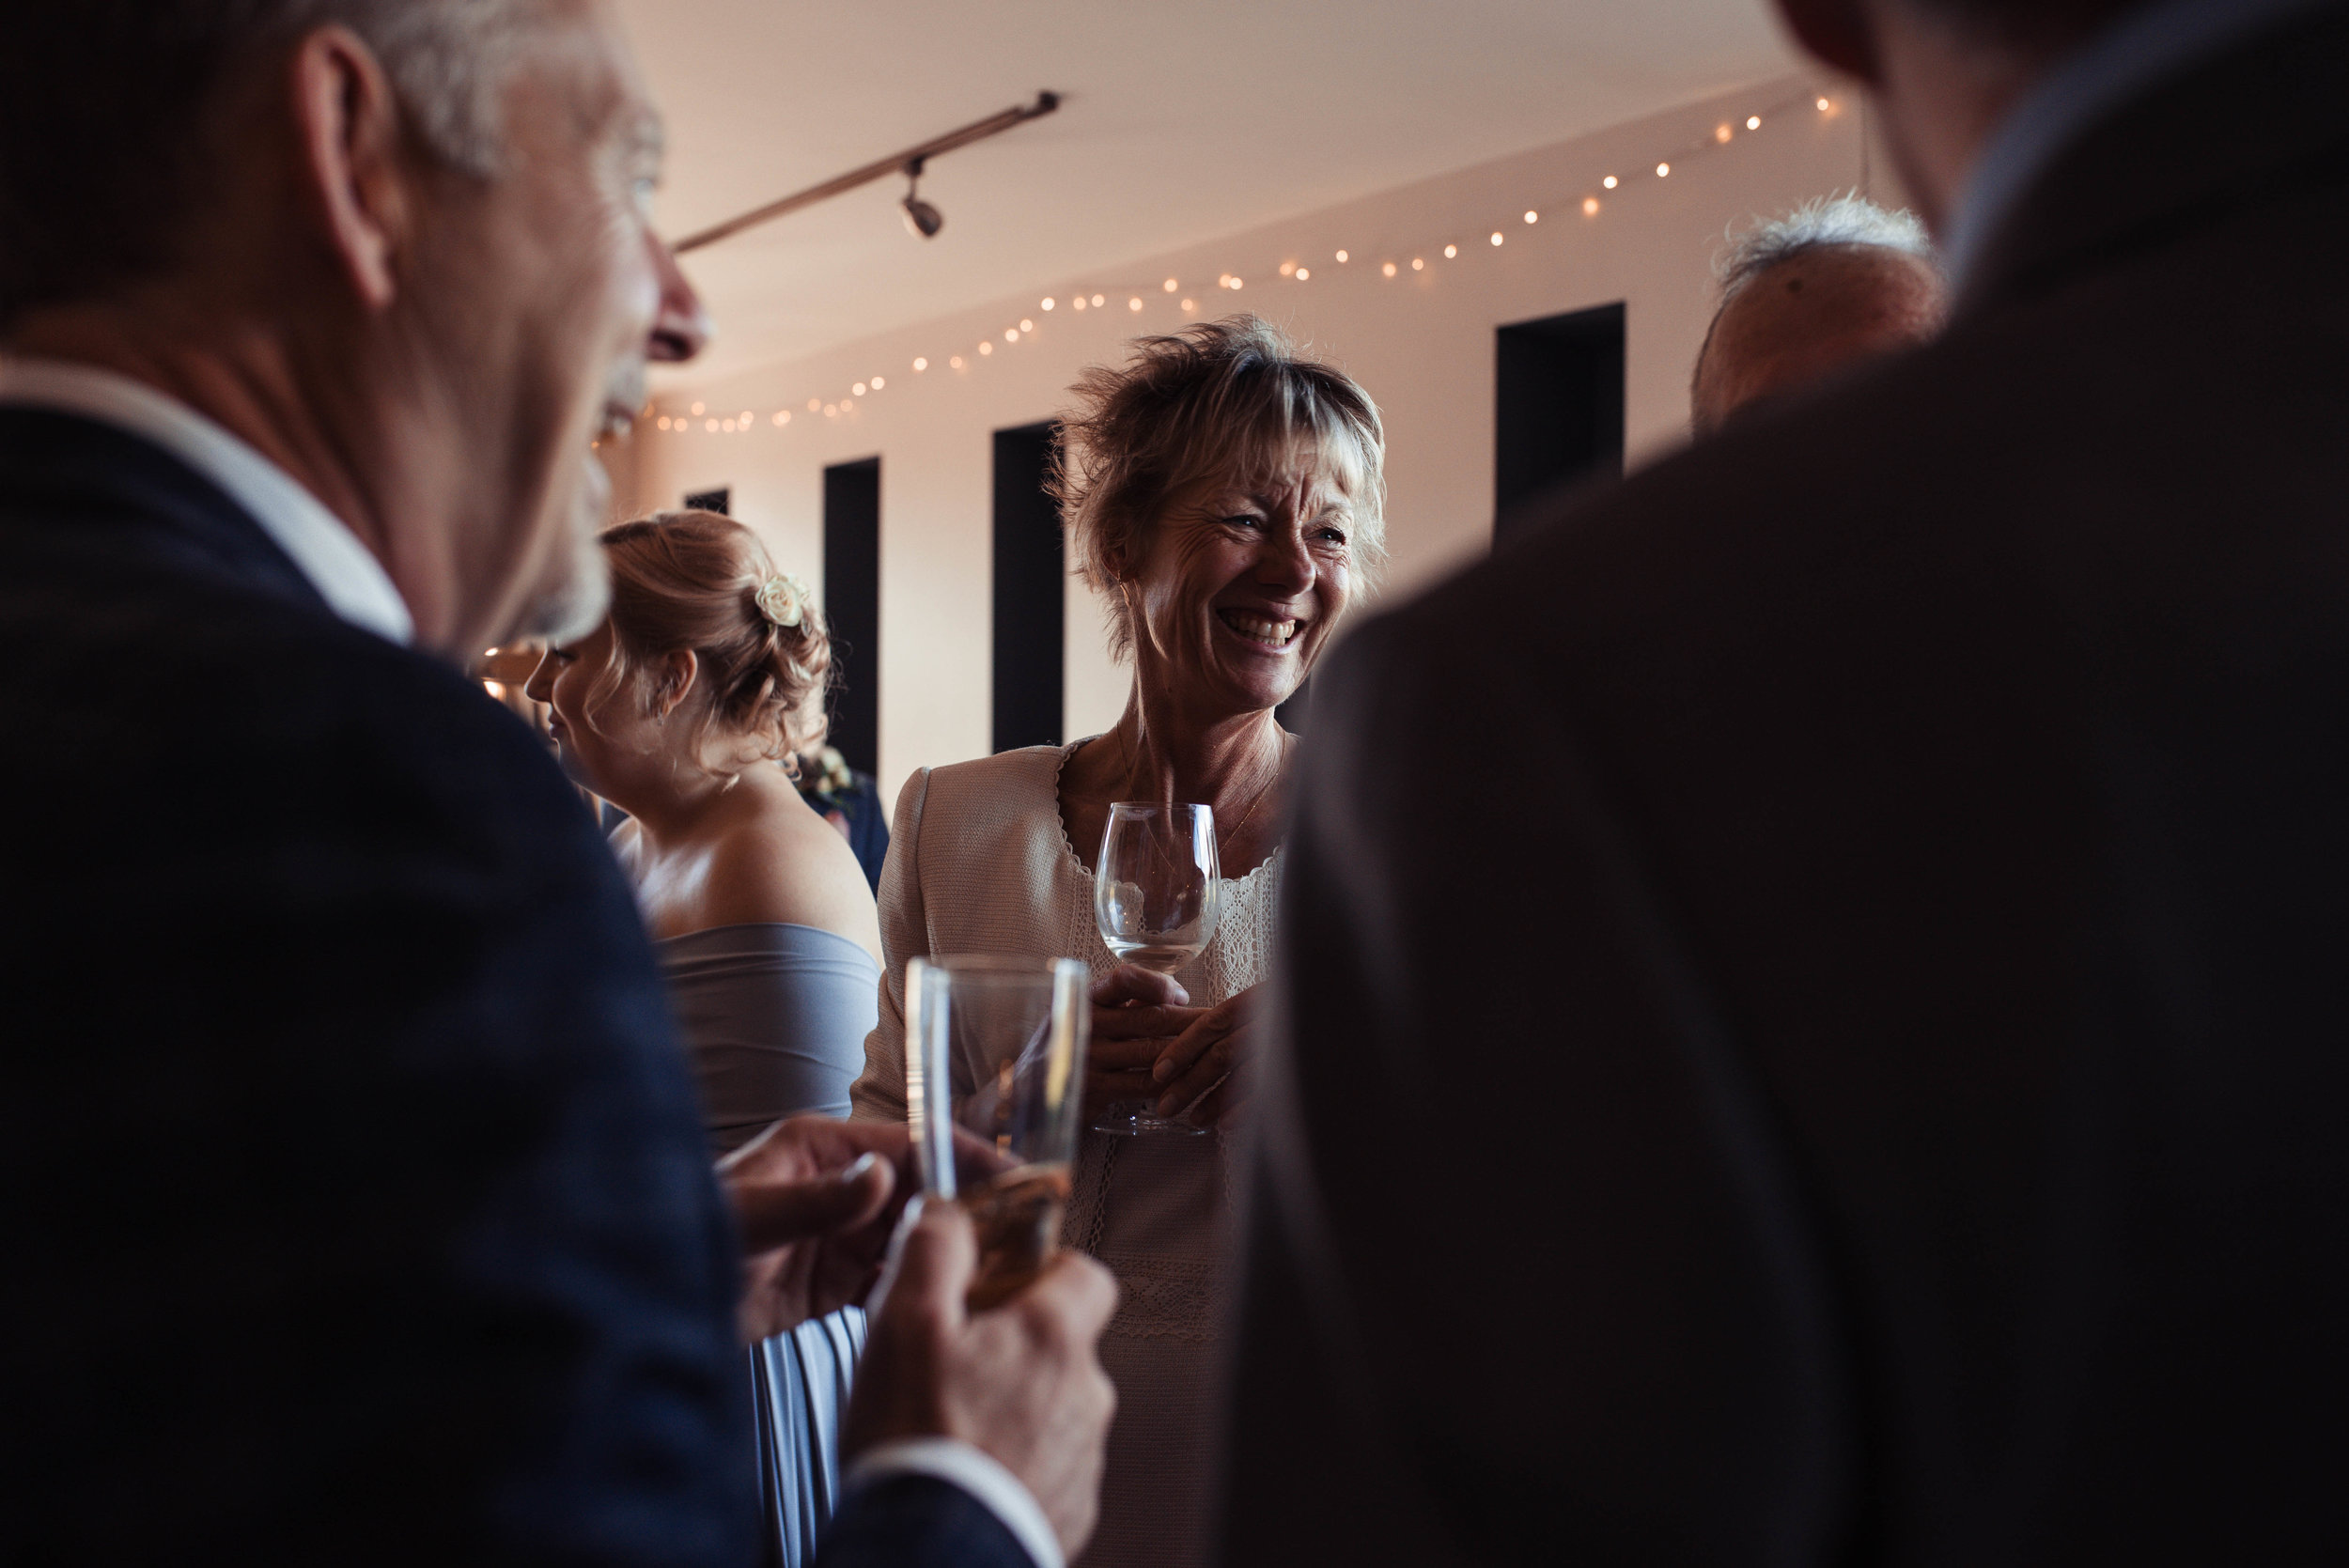 A female wedding guest dressed in a cream suit laughs at a joke one of the other guests tells